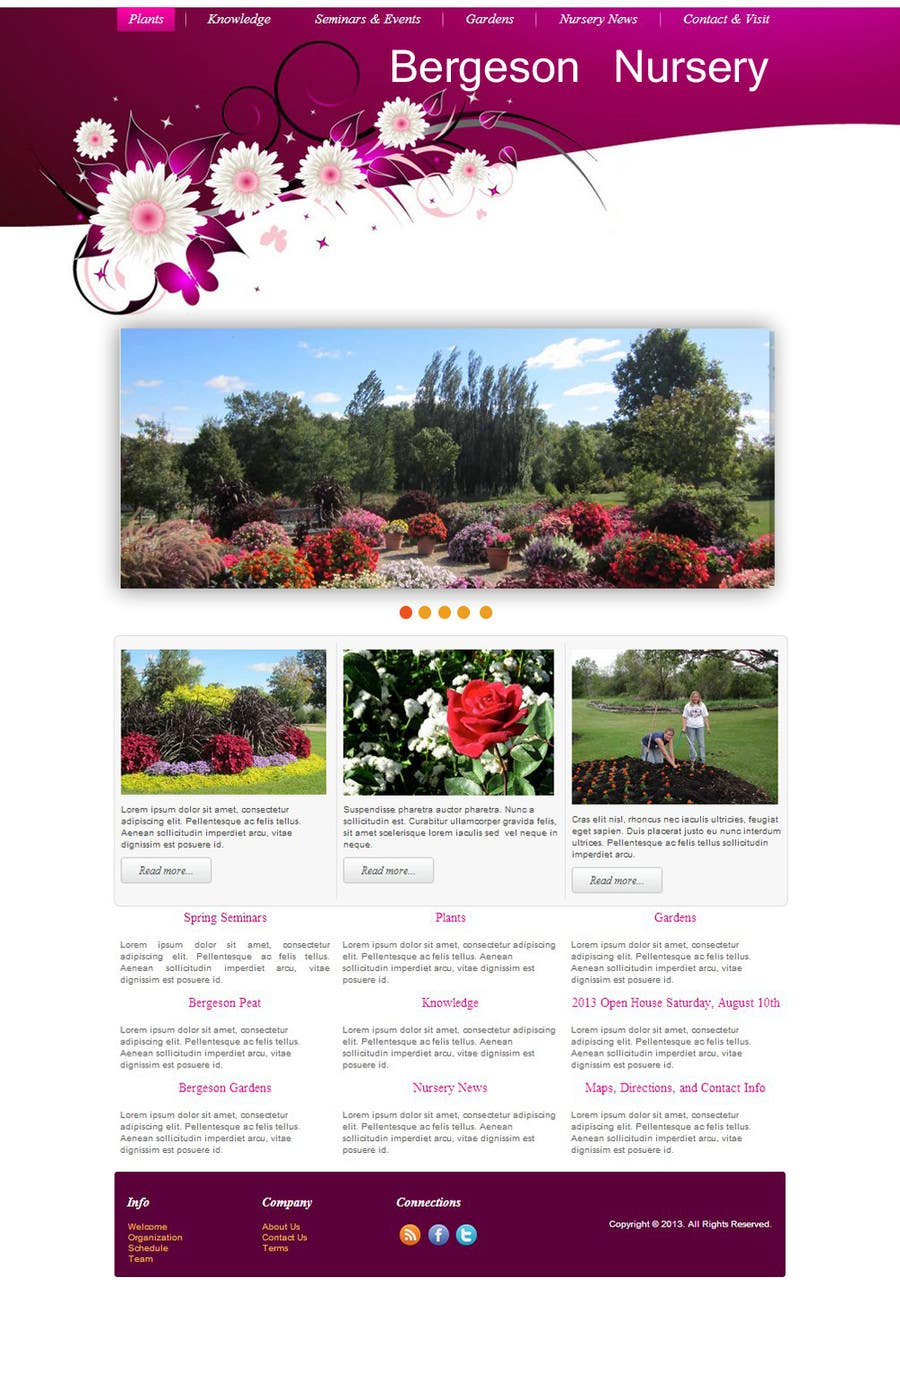 #2 for Design Inspiration for Bergeson Nursery Website by xahe36vw